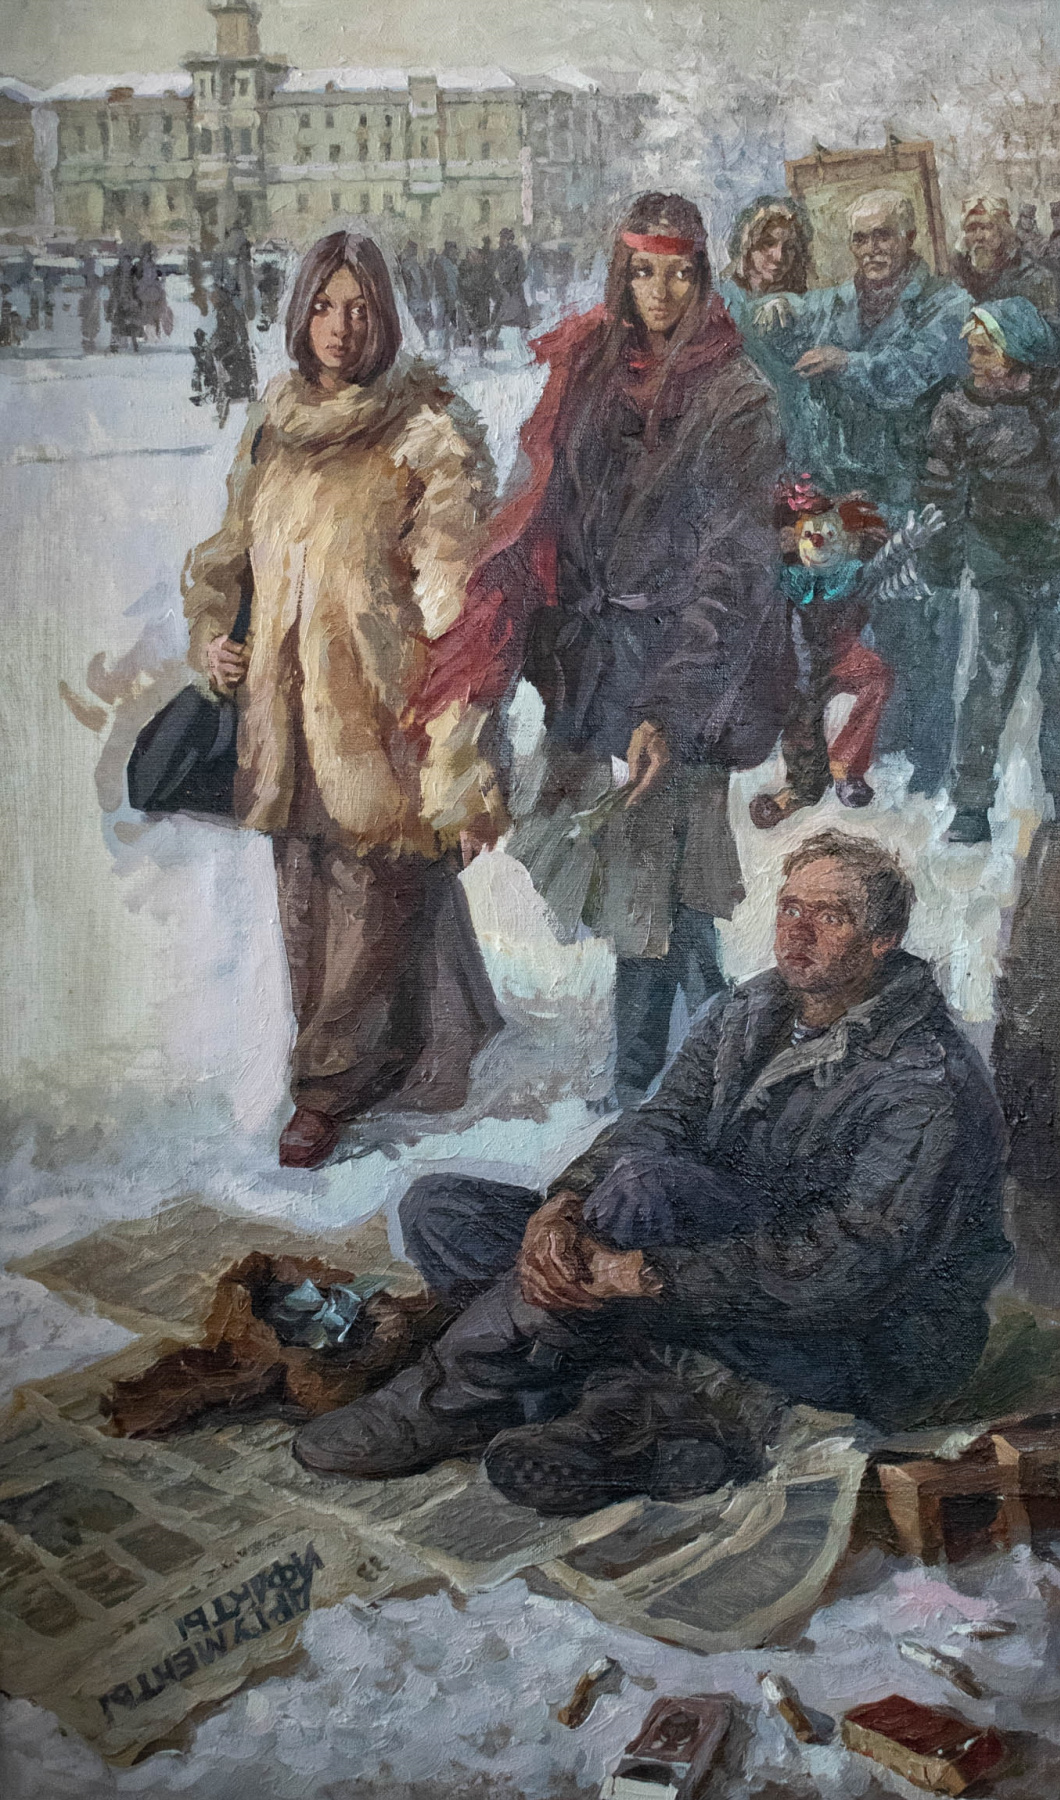 Alexey Alekseevich Drilev. Paradoxes of Russia or the Link of Times